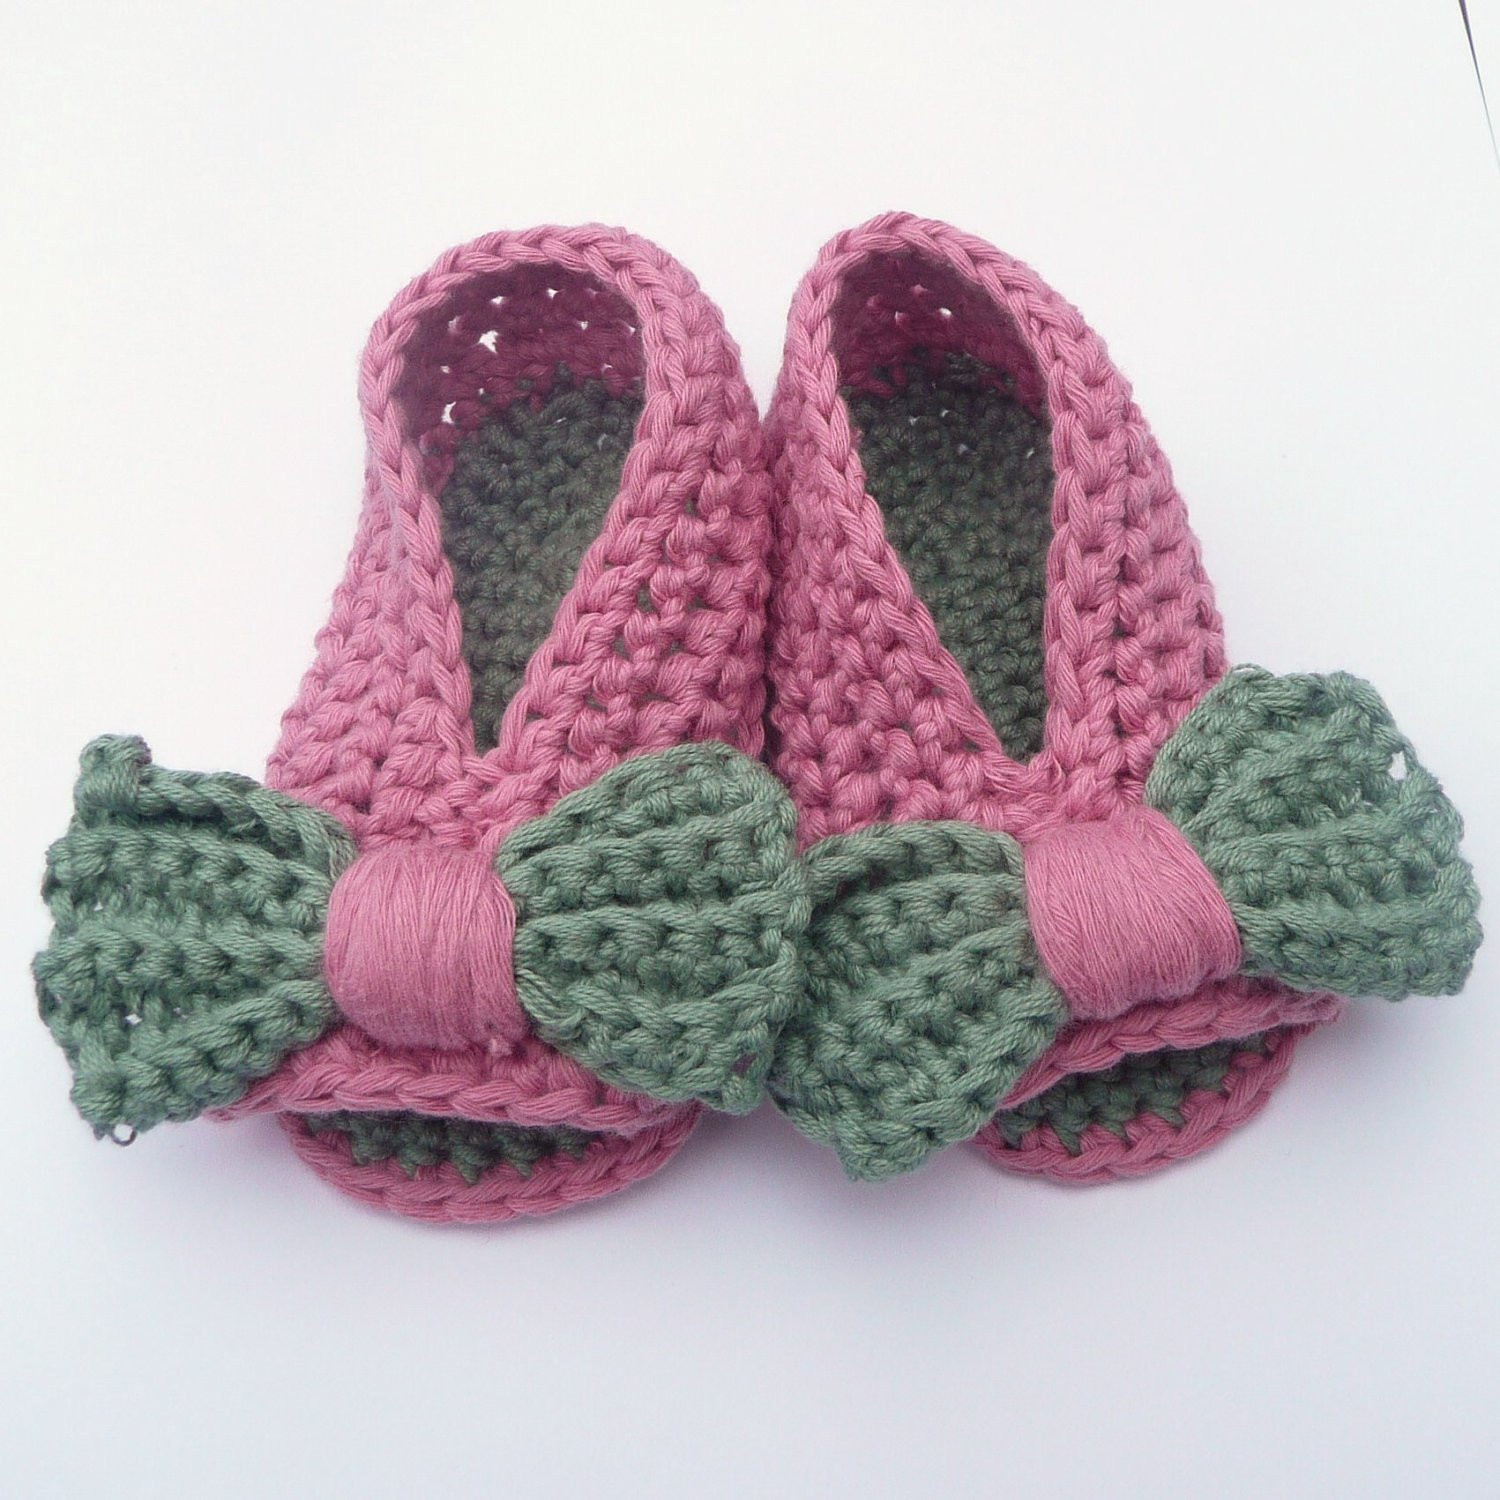 Crochet Baby Sandals New Baby Sandals Crochet Pattern Baby Booties Shoes Baby Bow Of New 46 Models Crochet Baby Sandals